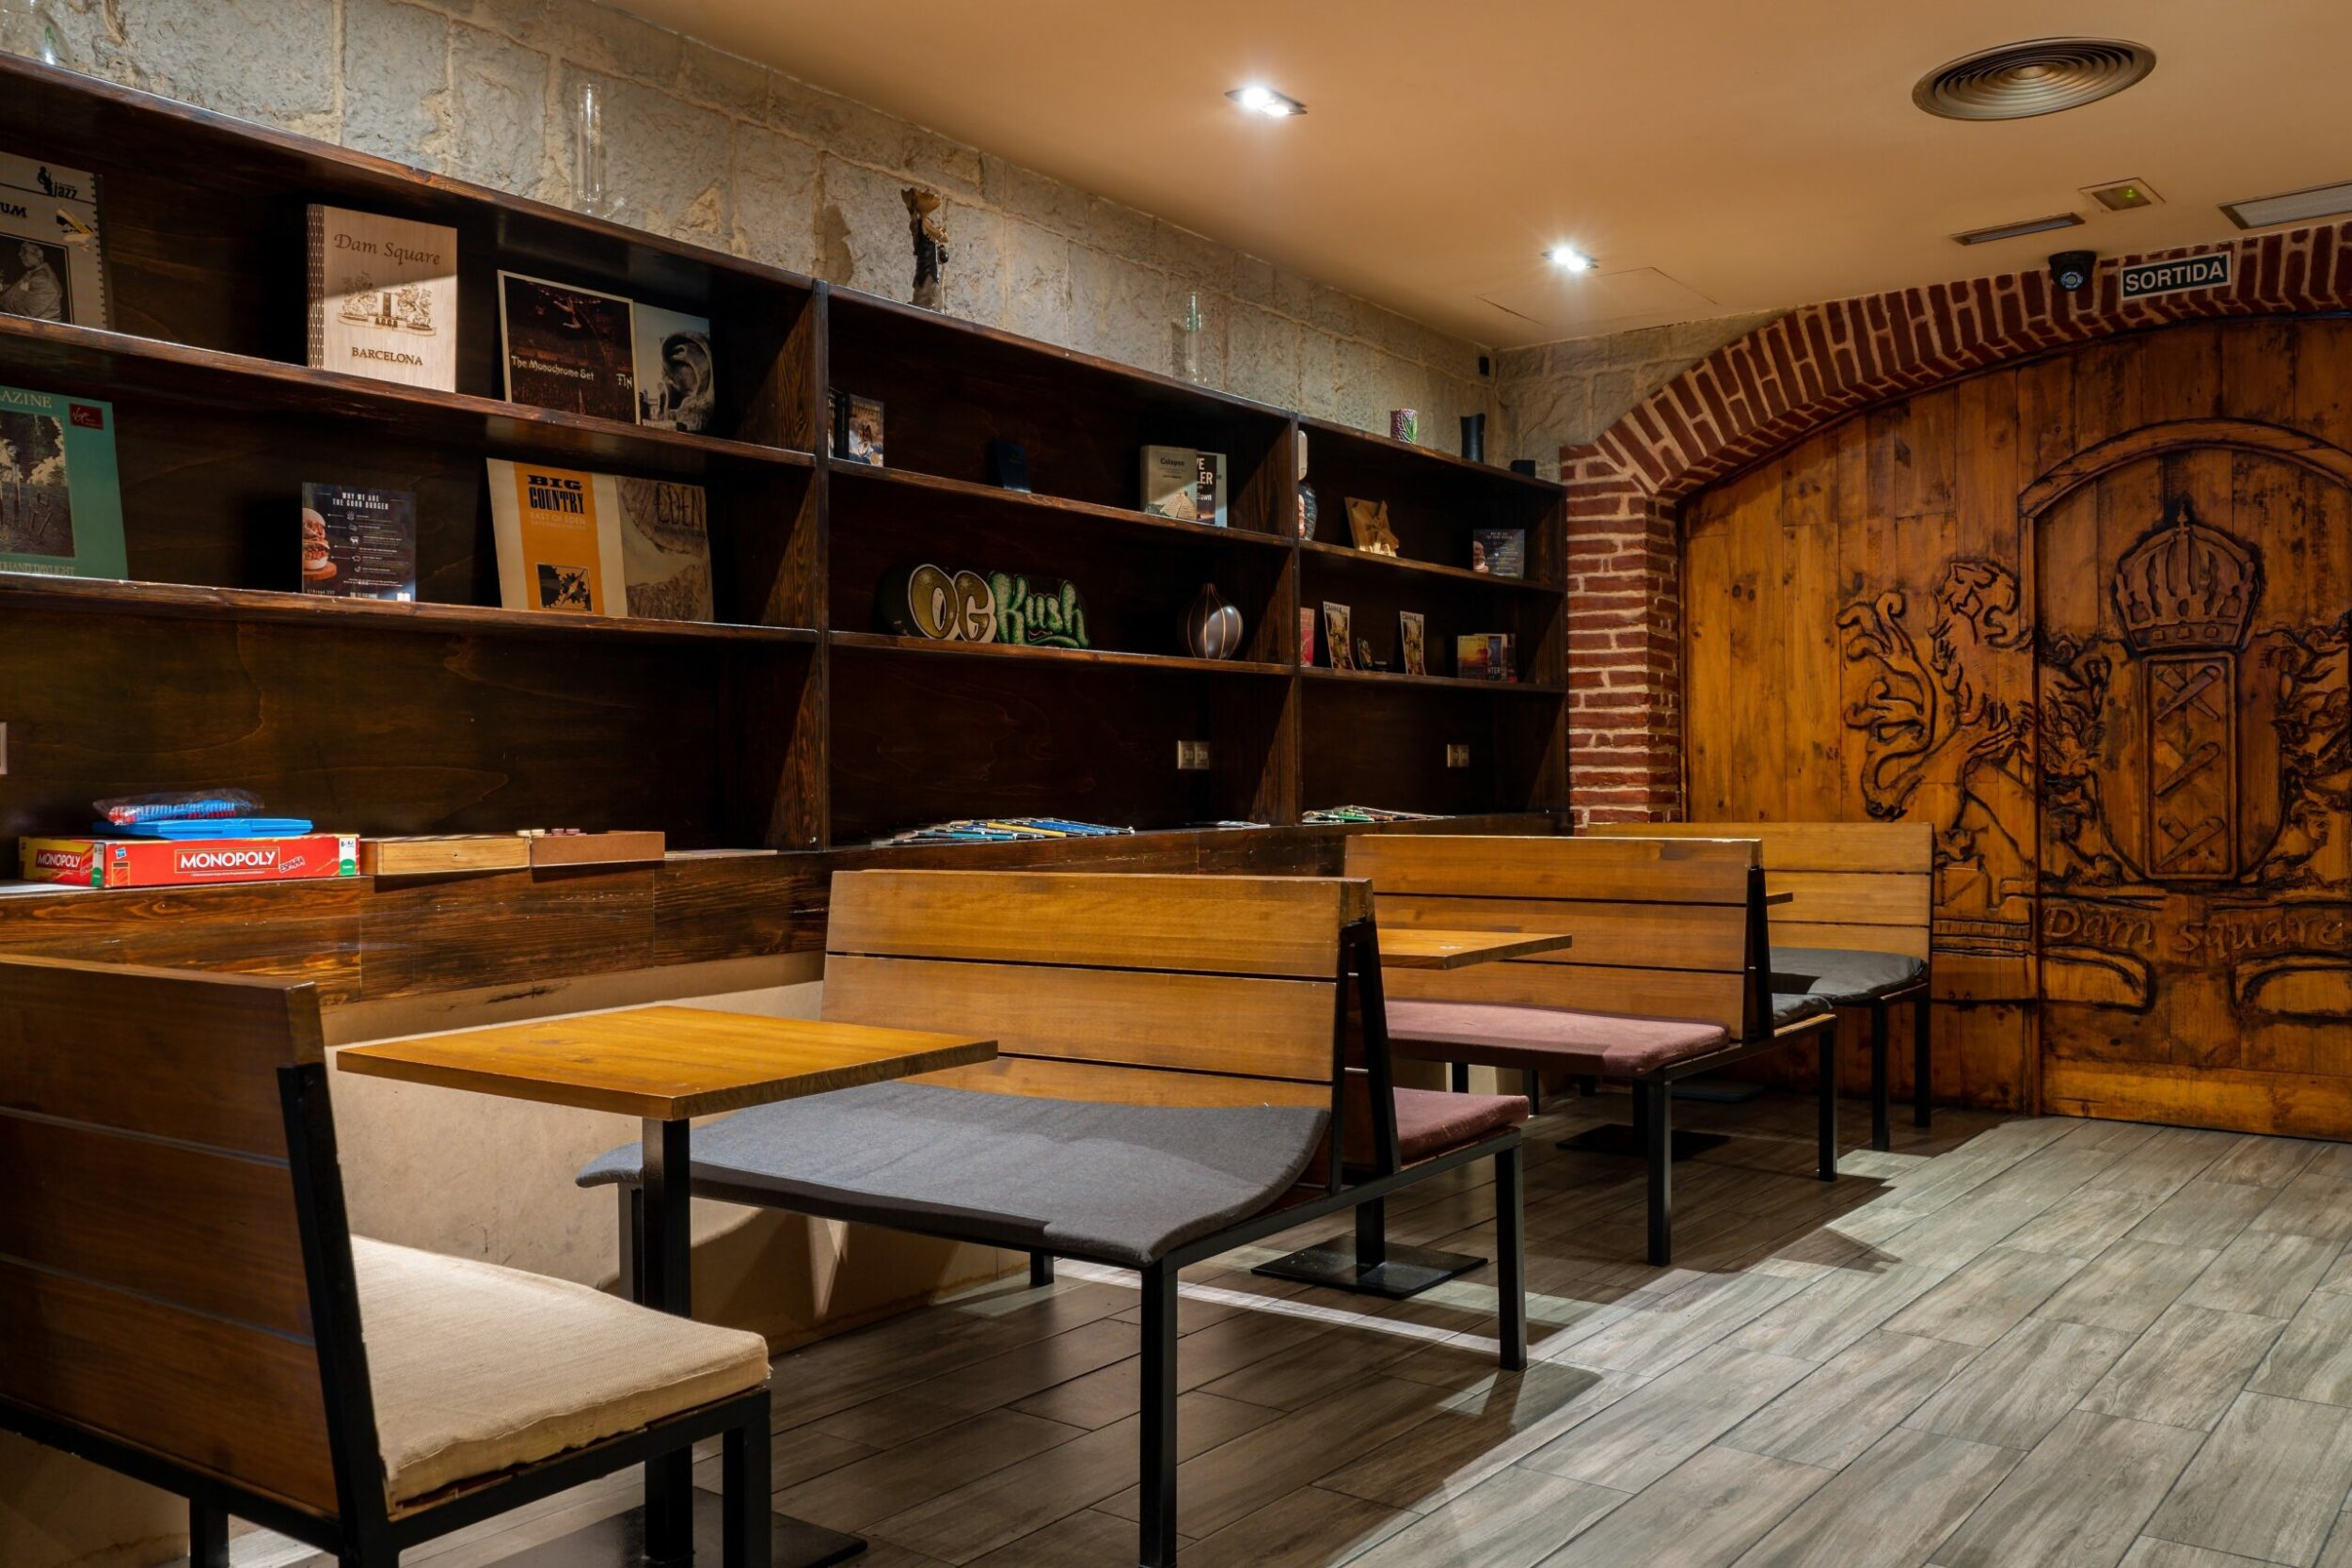 the entrance door and wooden tables in the cannabis club